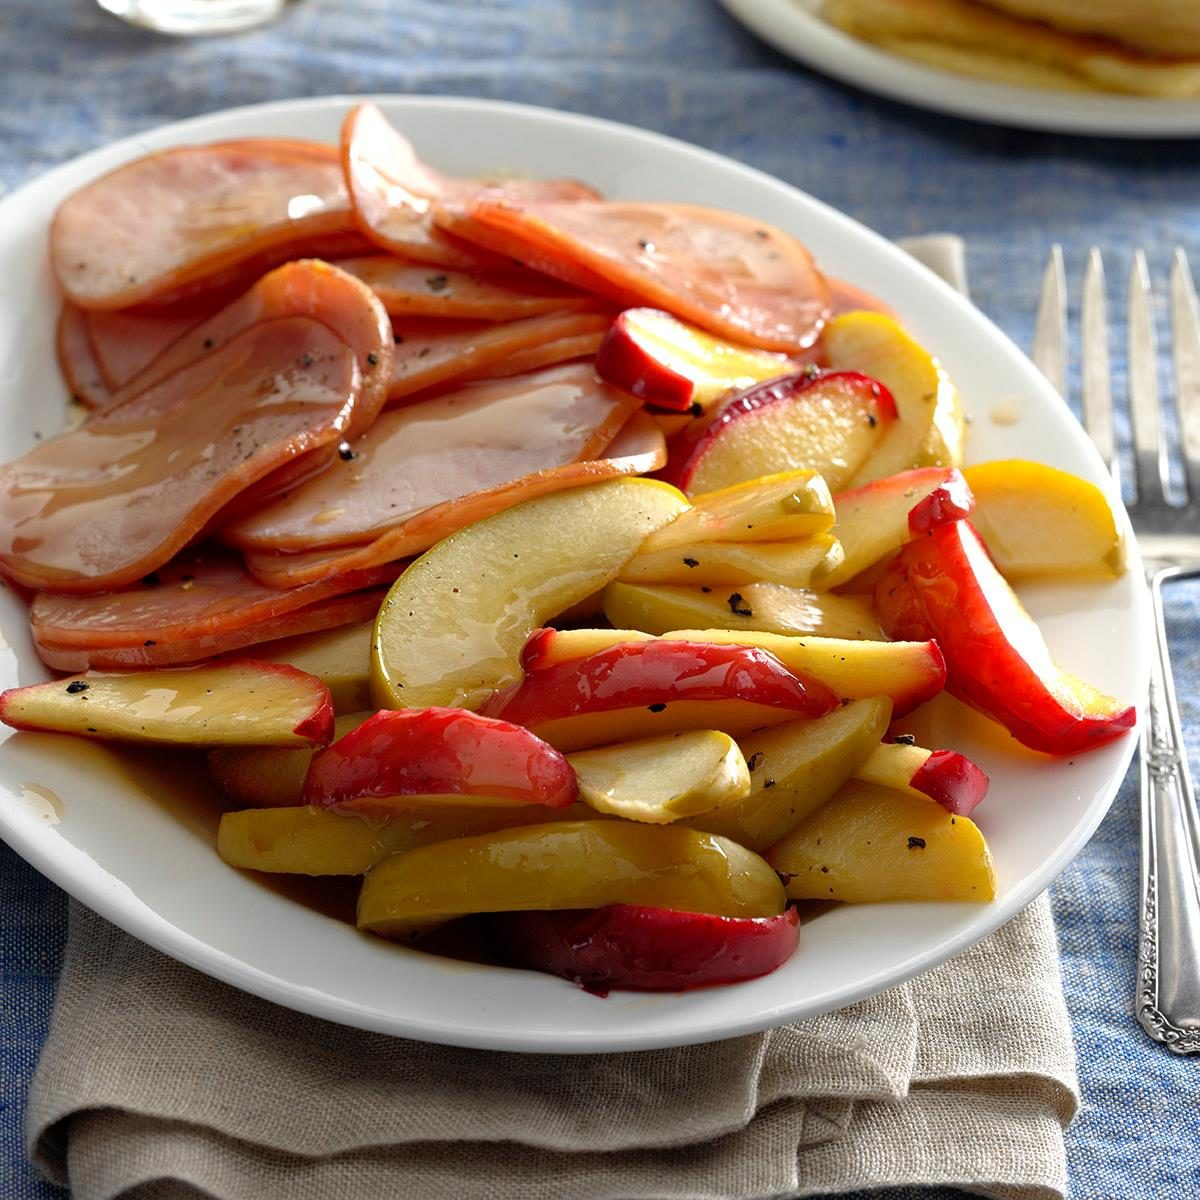 Canadian Bacon with Apples